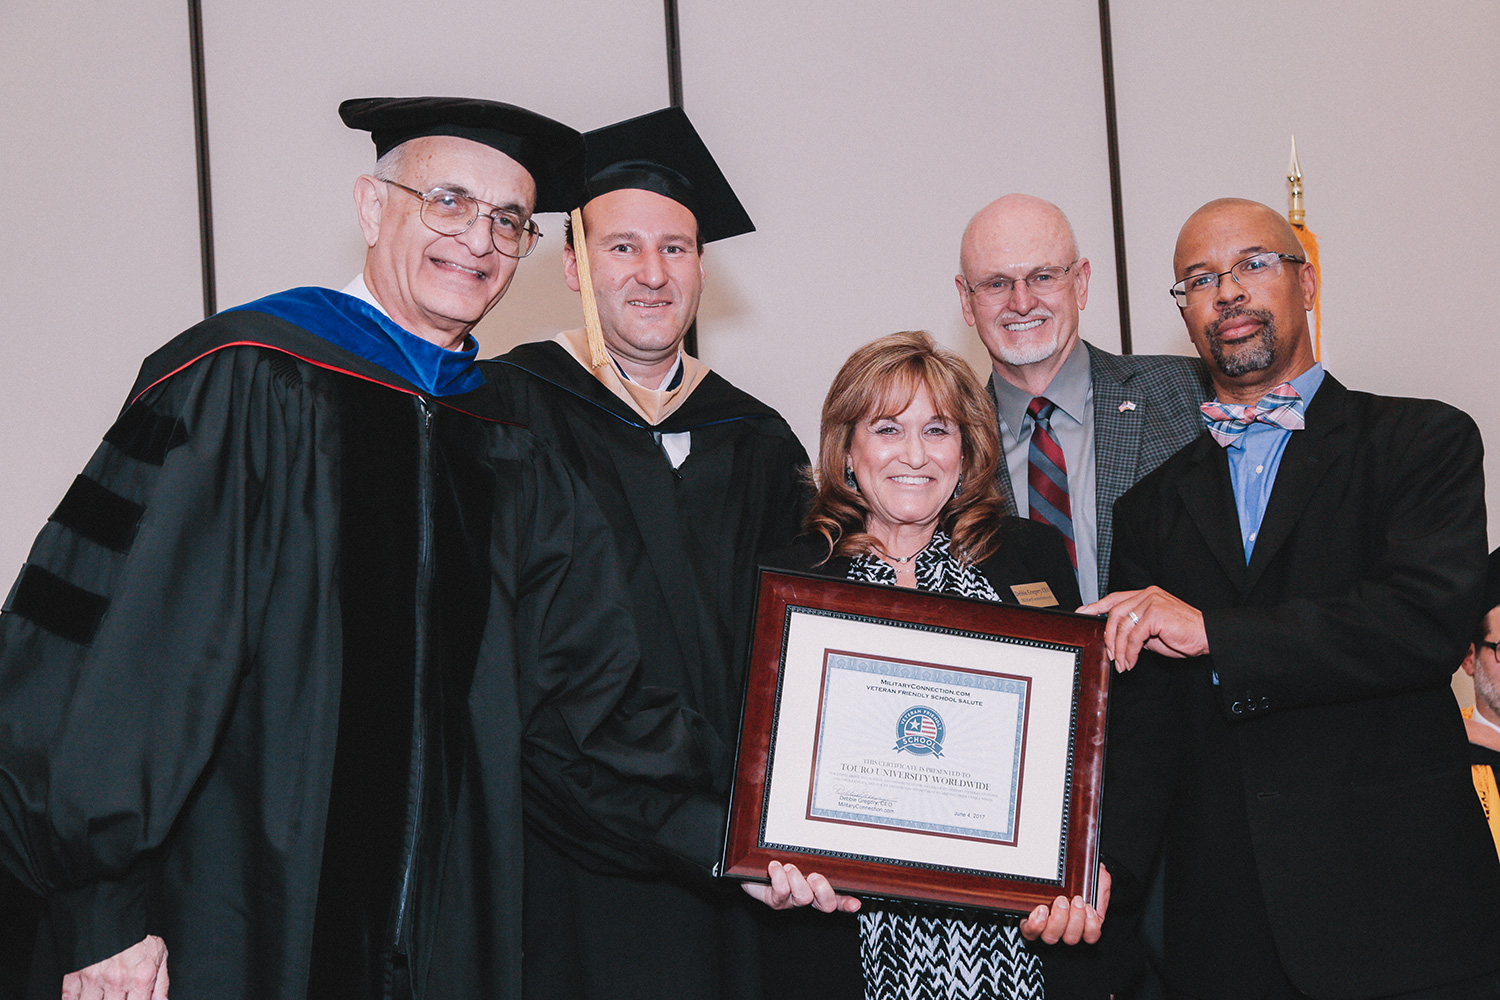 L-R: Dr. Yoram Neumann, Mr. Roy Finaly, General Jim Combs, Mrs. Debbie Gregory and Mr. Michael Johnson